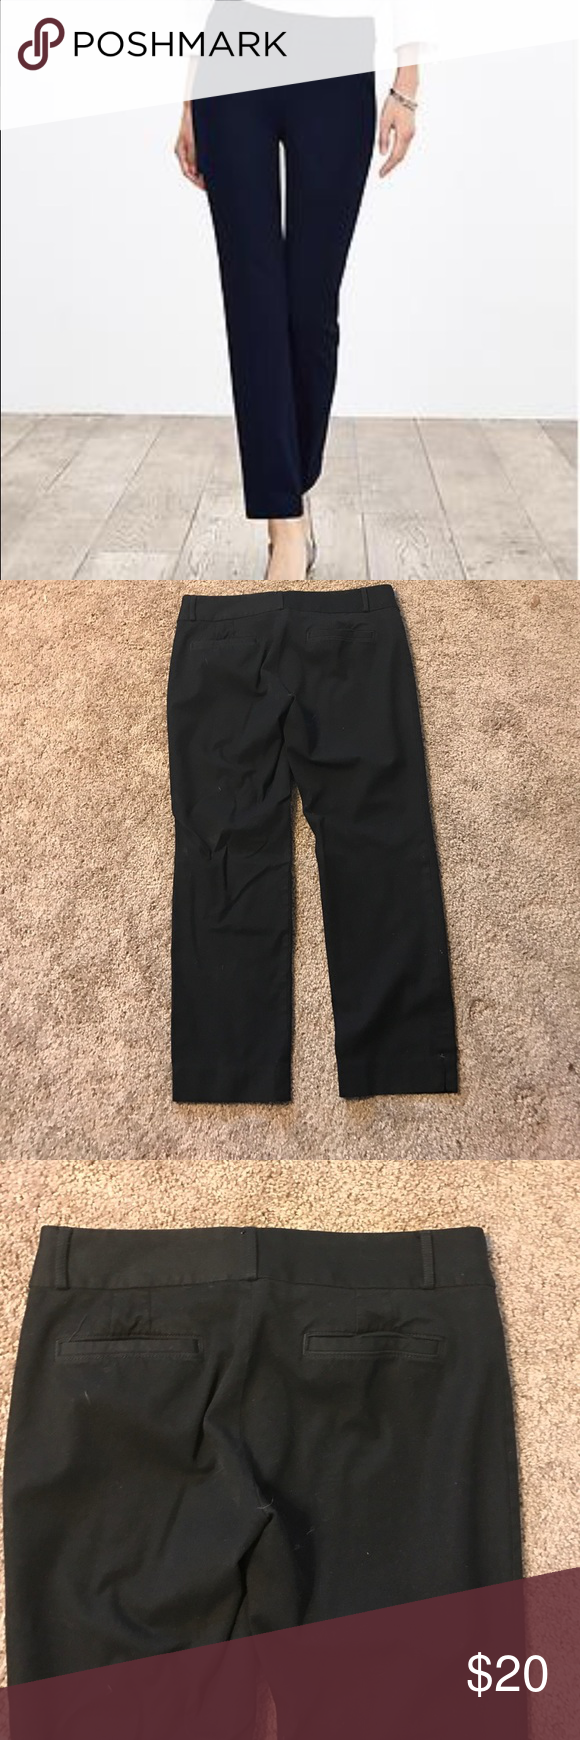 Banana Republic Sloan Fit Pants Banana Republic Ankle dress pants. Perfect to wear to the office or church. Pair with a black blazer to have the perfect professional attire. From a smoke free home and in great condition. Banana Republic Pants Ankle & Cropped